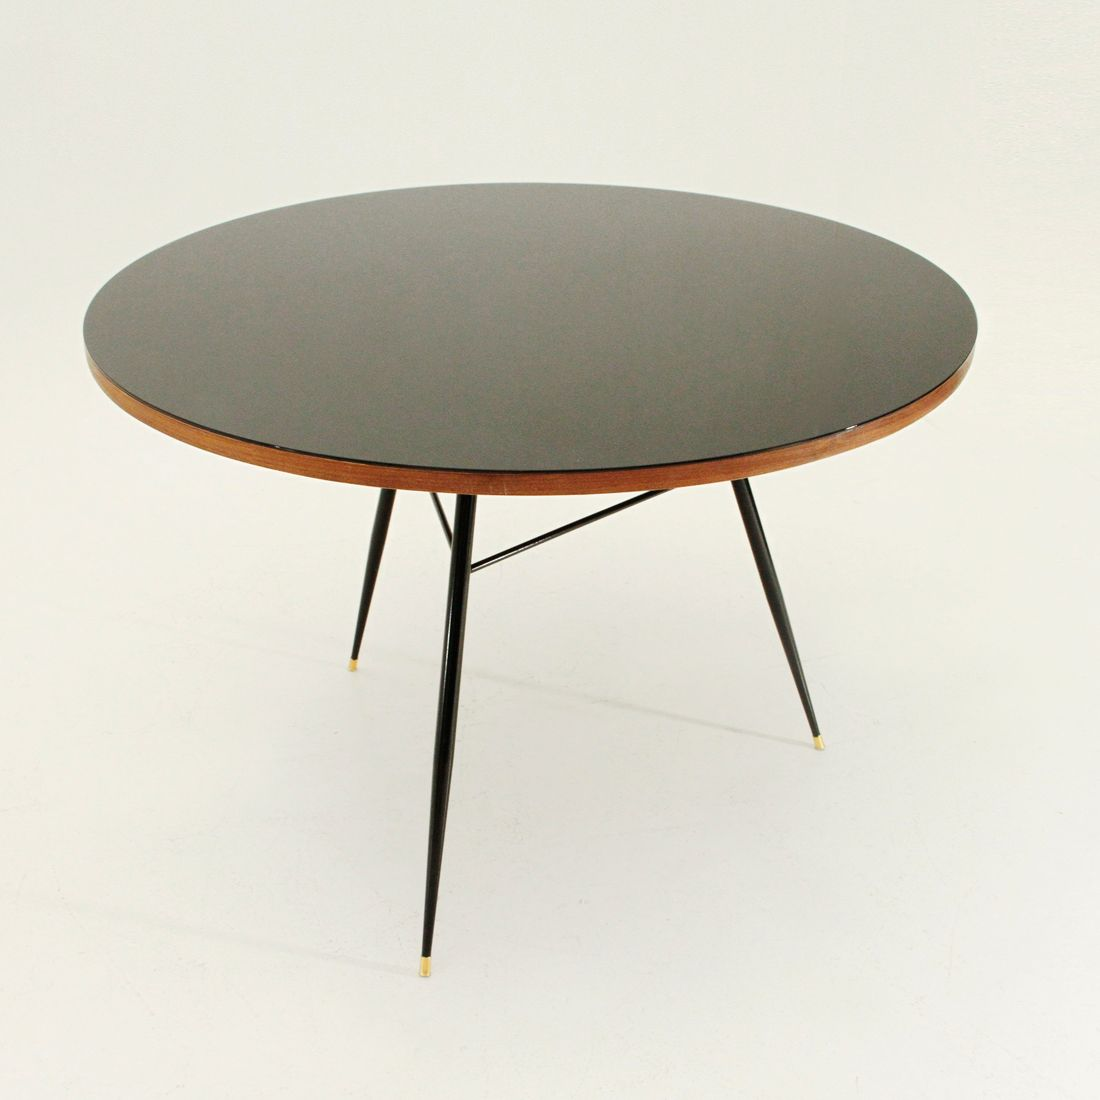 Round black veneer glass top table 1950s for sale at pamono Round glass table top